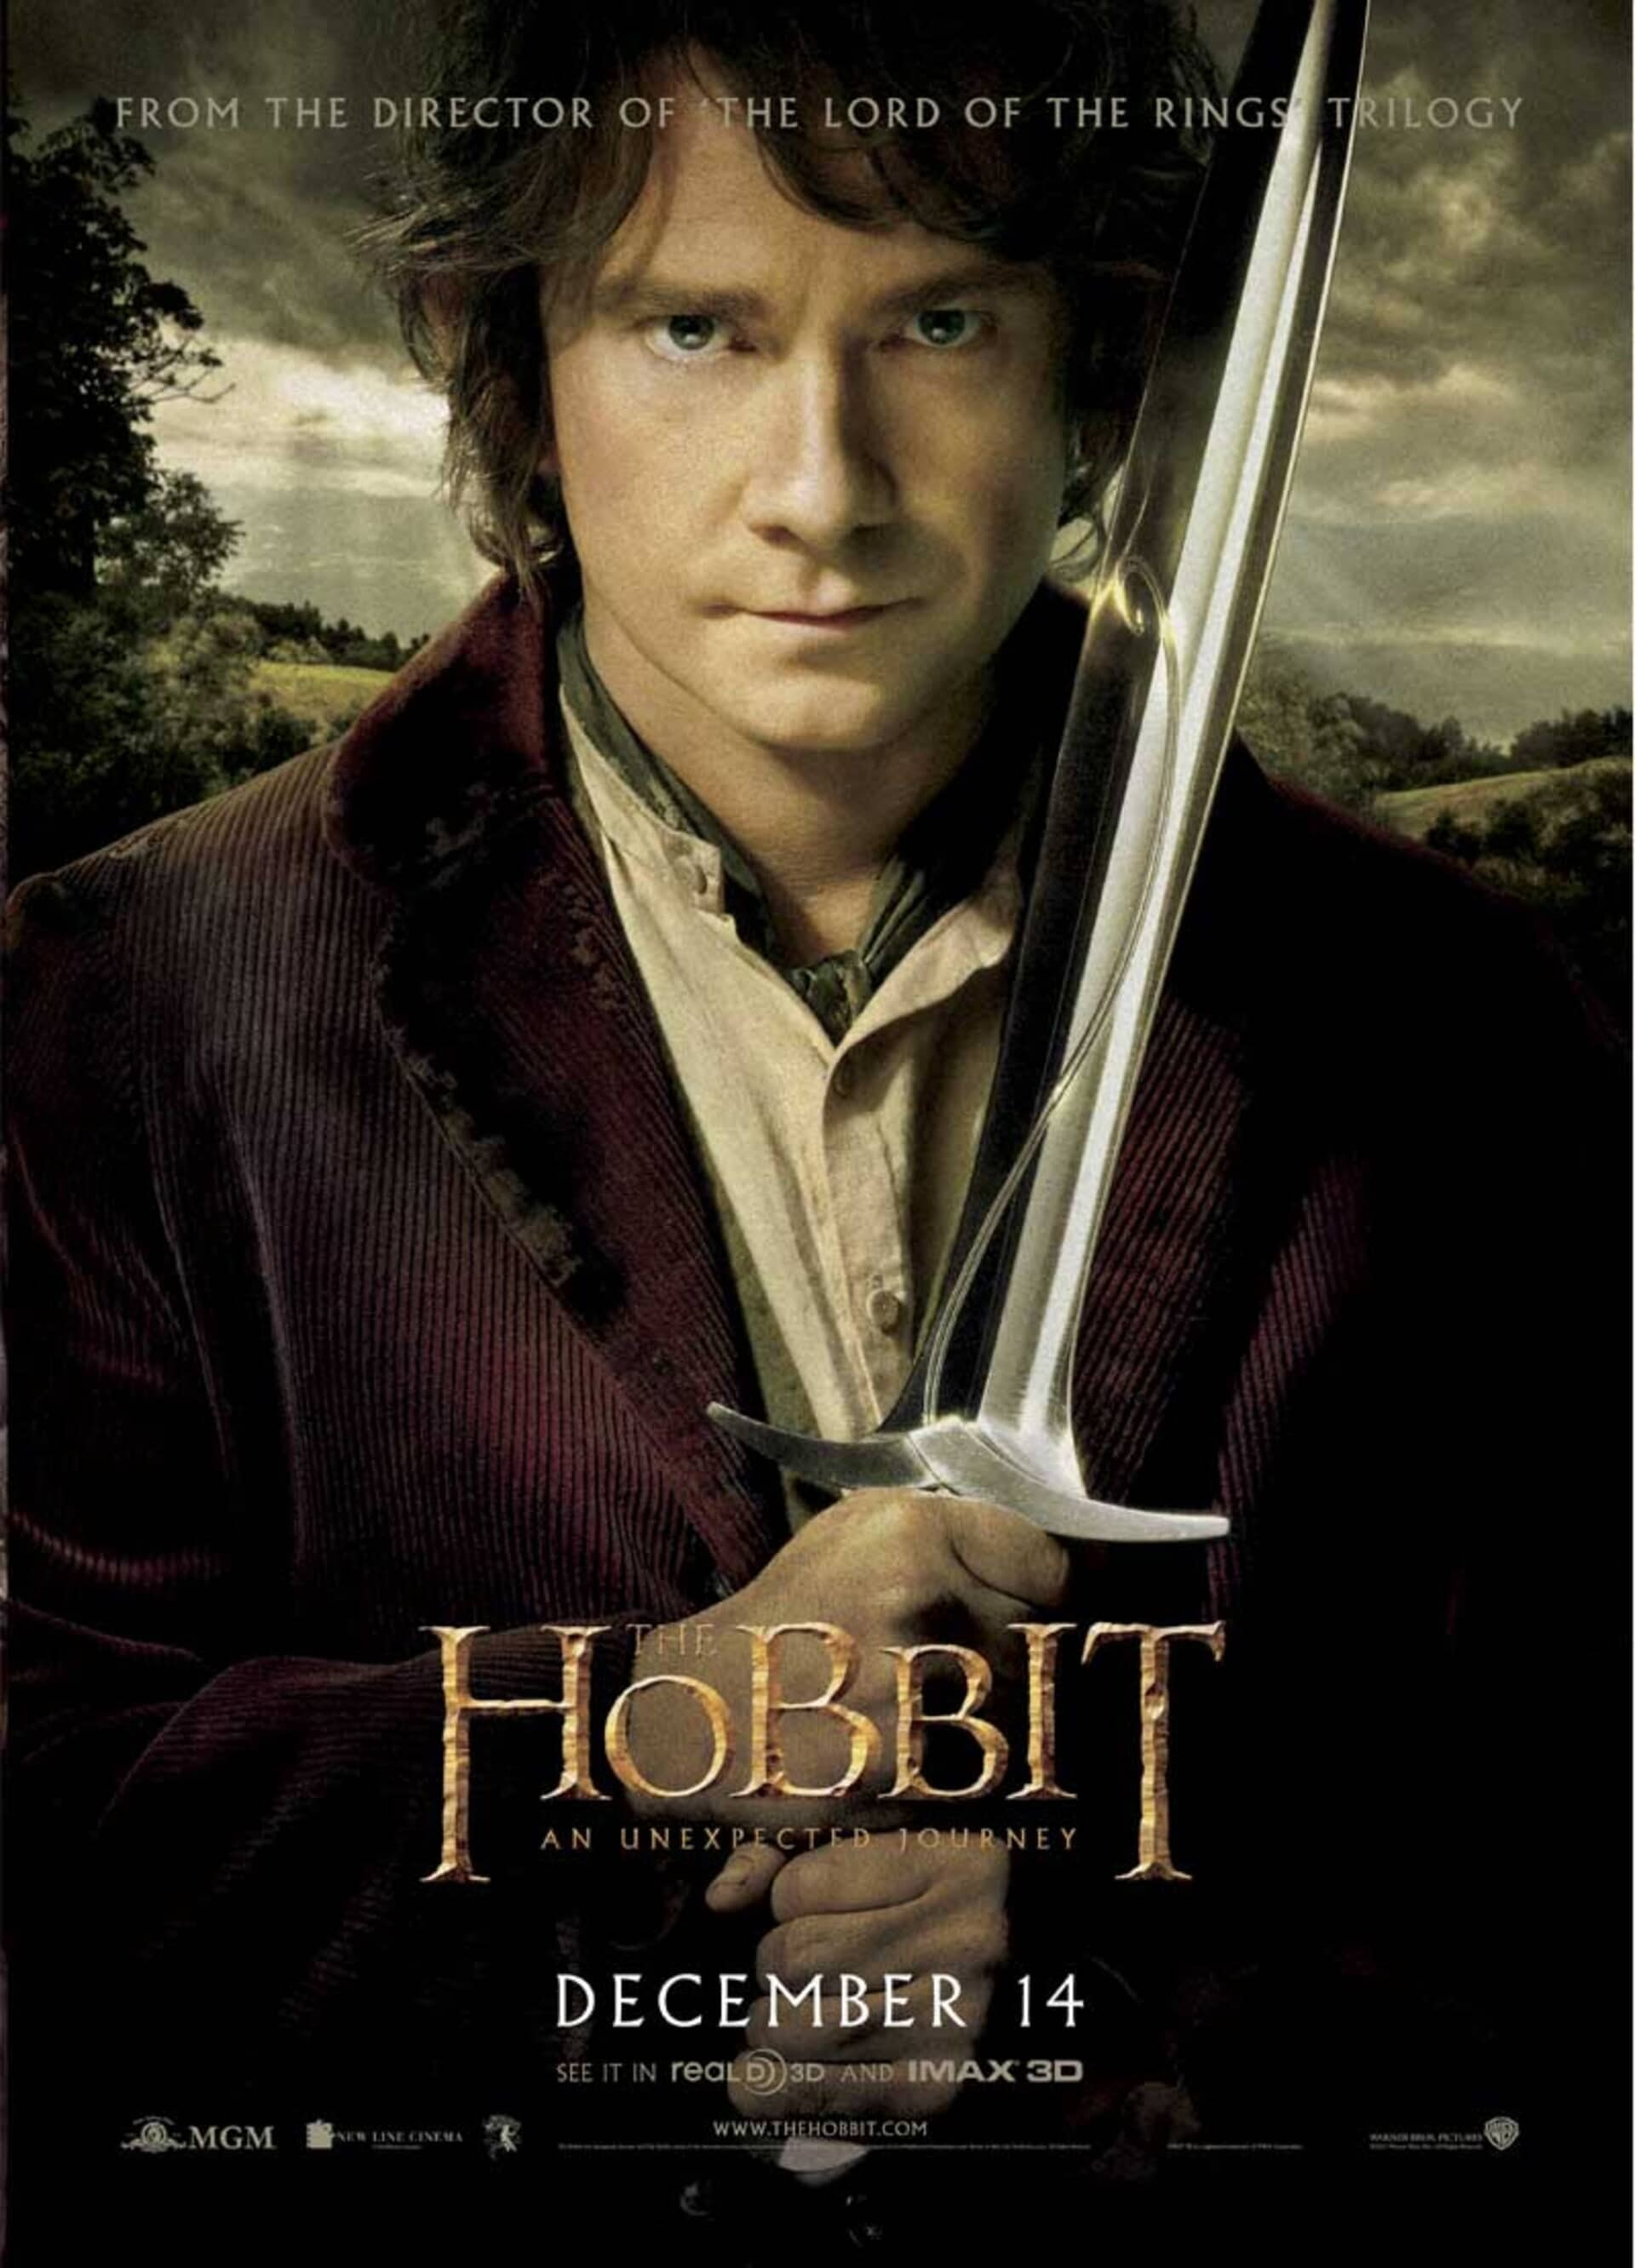 The Hobbit: An Unexpected Journey - Poster 3